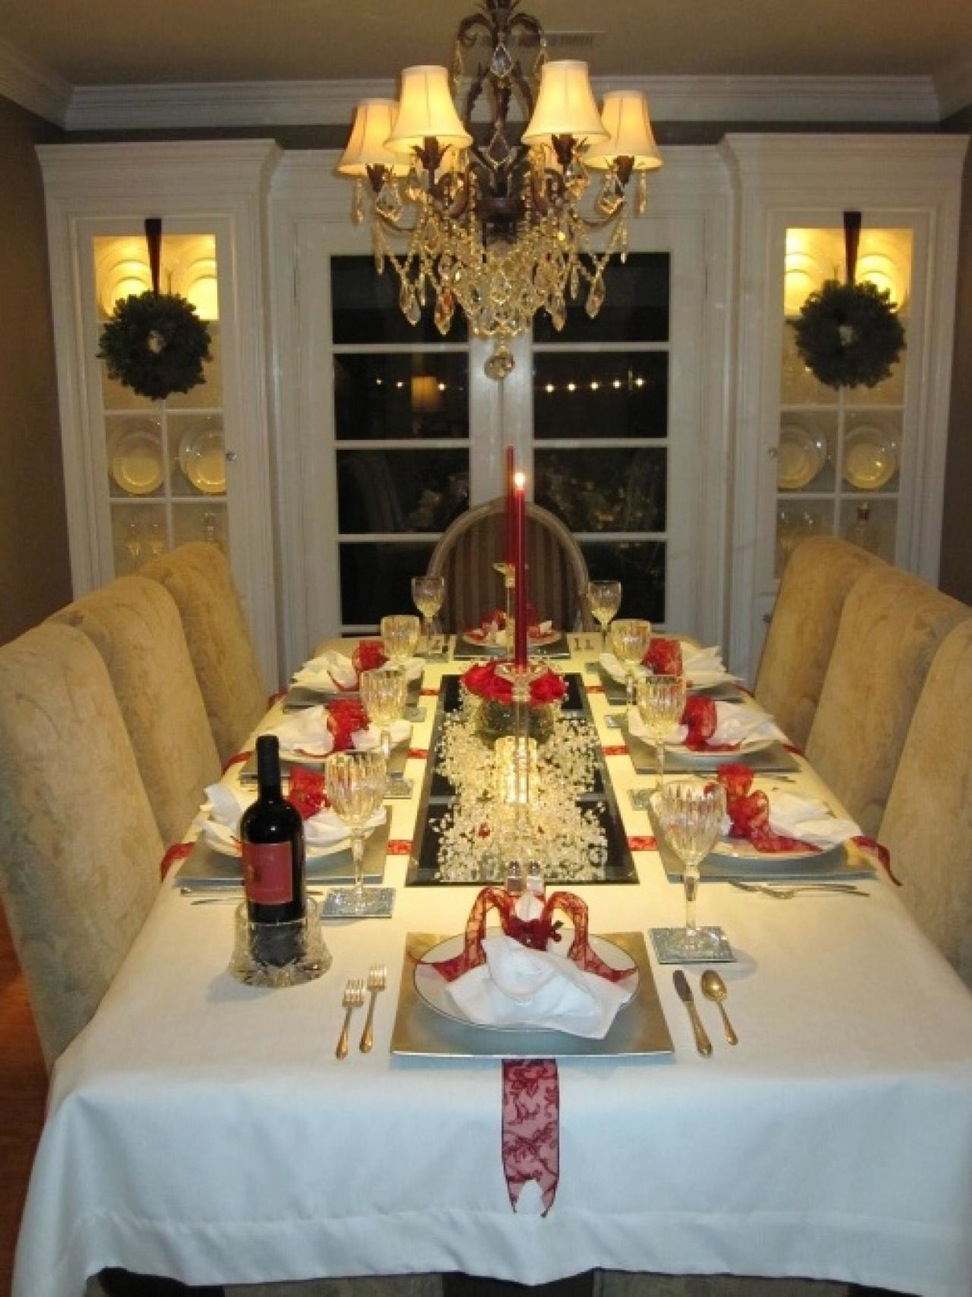 10 Gorgeous Table Settings for Christmas that you Will Love table settings for christmas 8 Gorgeous Table Settings for Christmas that you Will Love 10 Gorgeous Table Settings for Christmas that you Will Love7